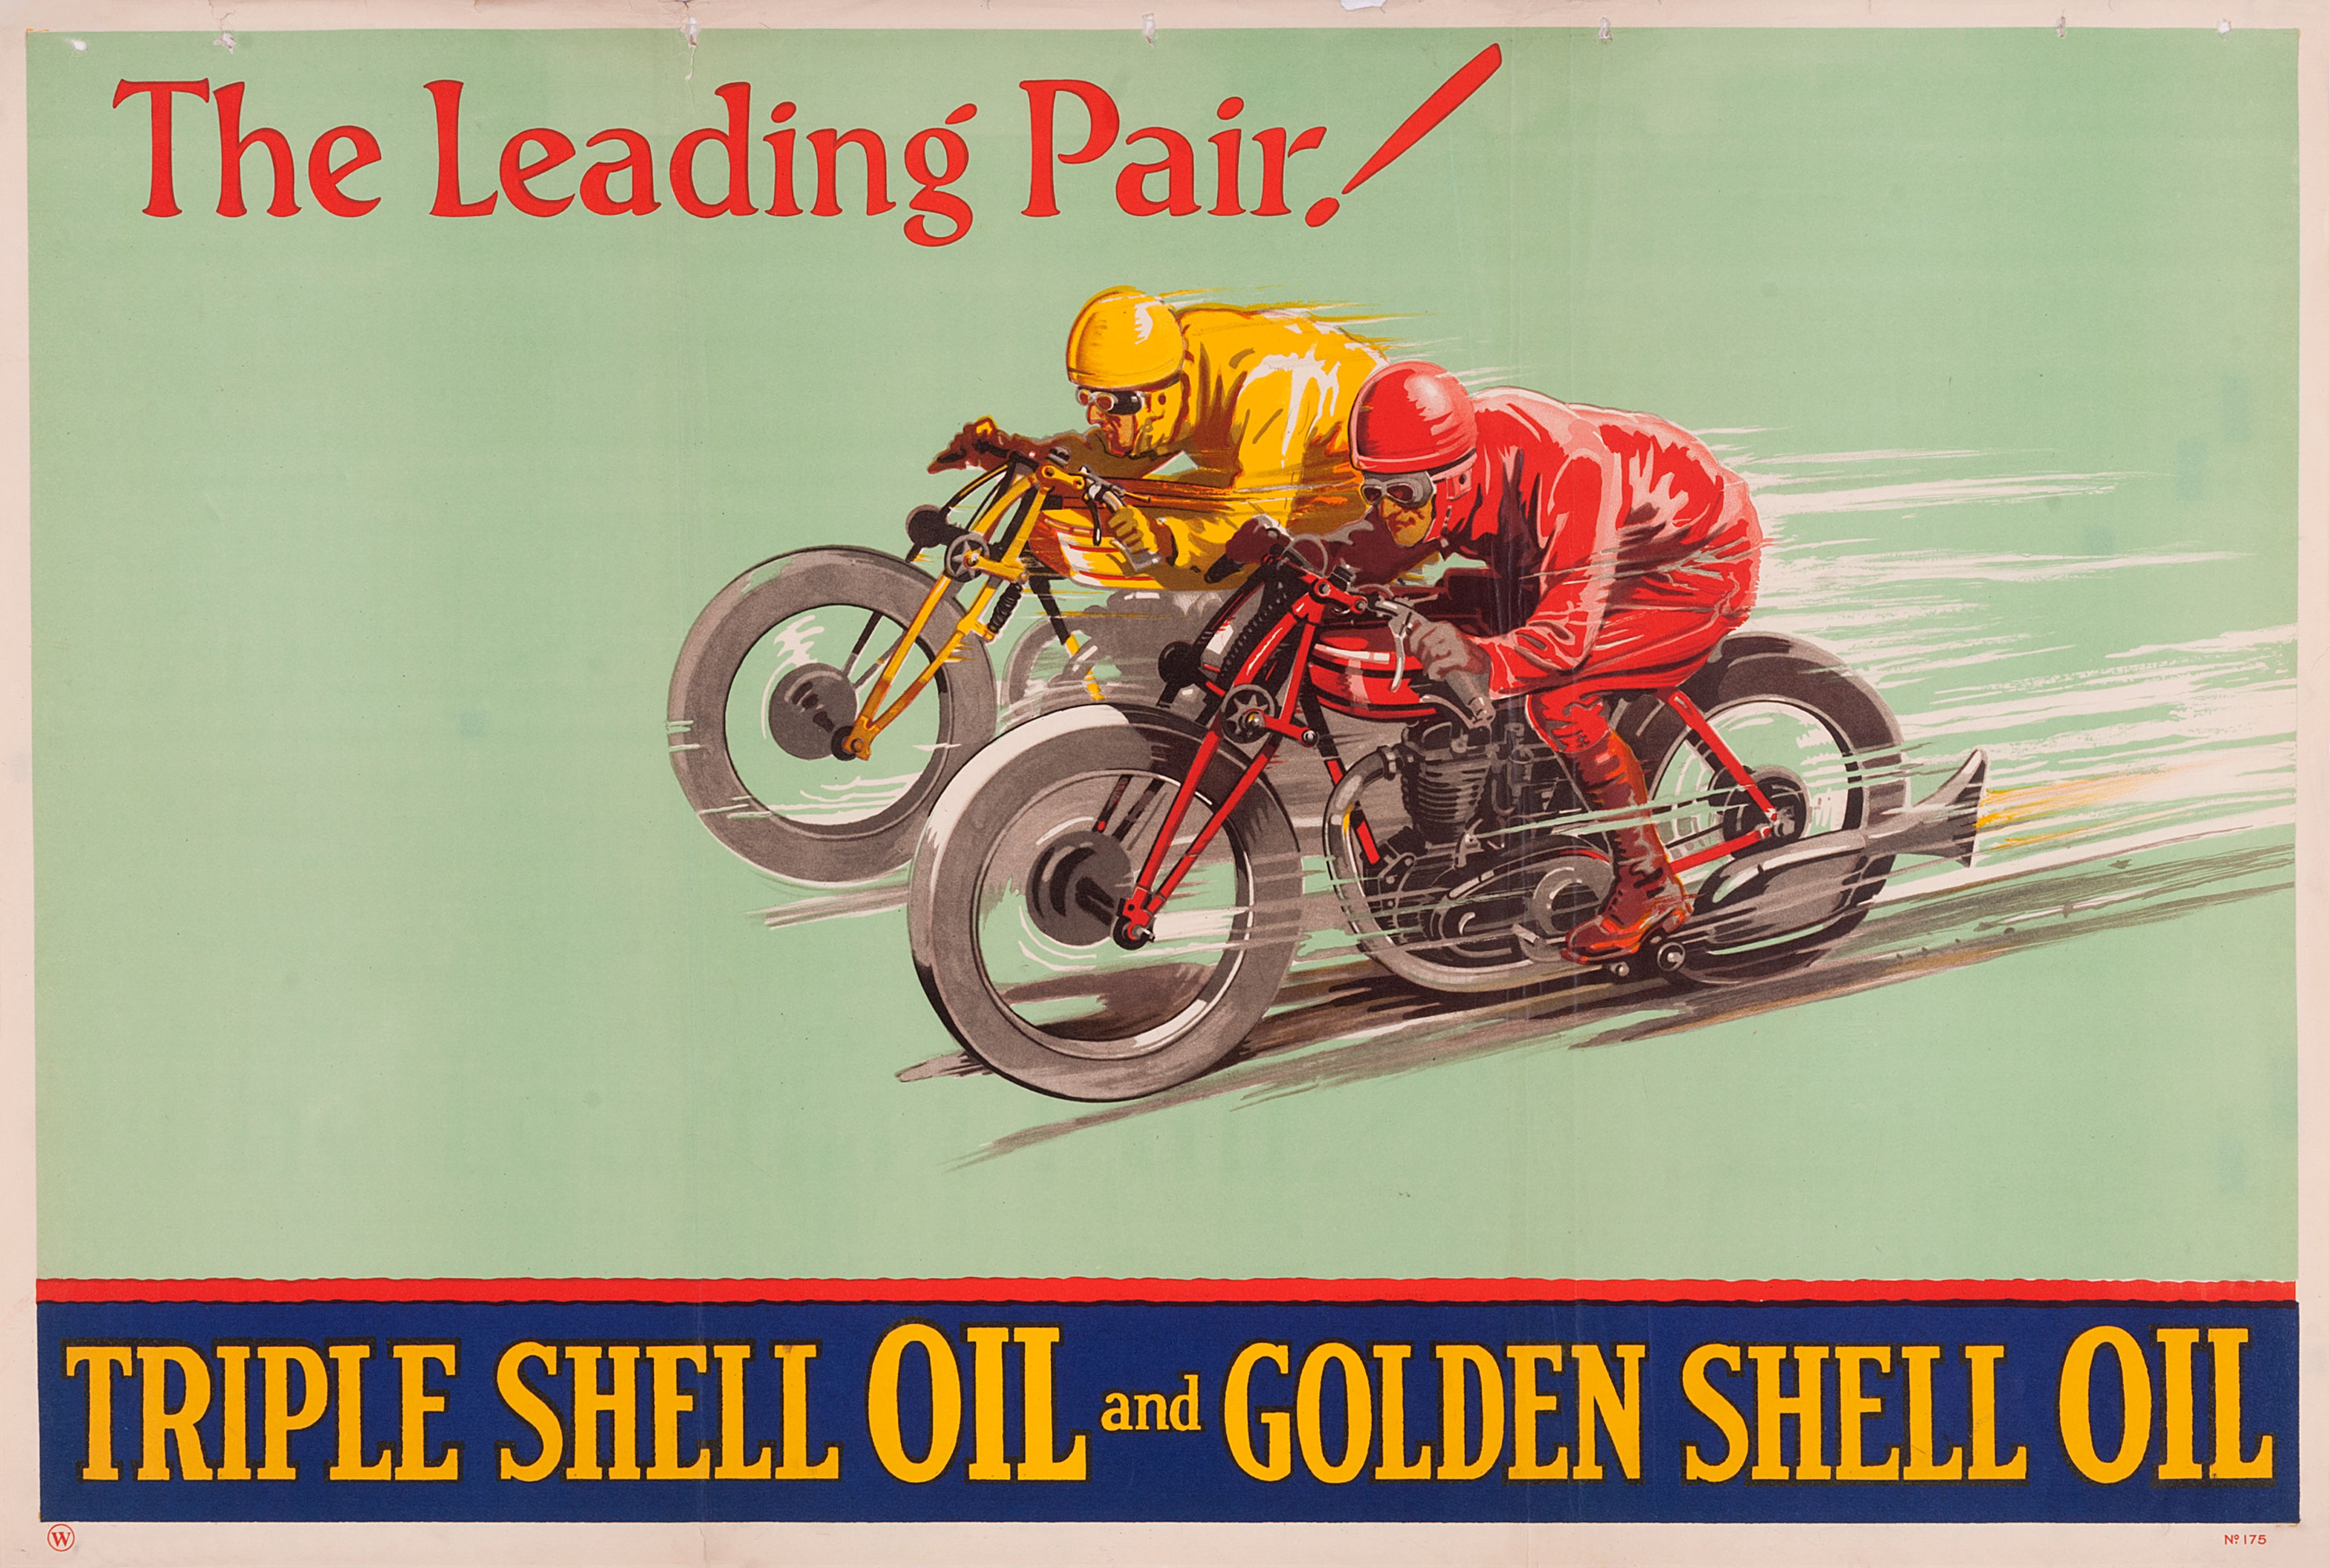 "Shell poster number 175, The Leading Pair (1928), no artist given. Painting of two men on motorbikes, one dressed in yellow/gold and the other in red. Caption reads; ""The Leading Pair, Triple Shell Oil and Golden Shell Oil""."